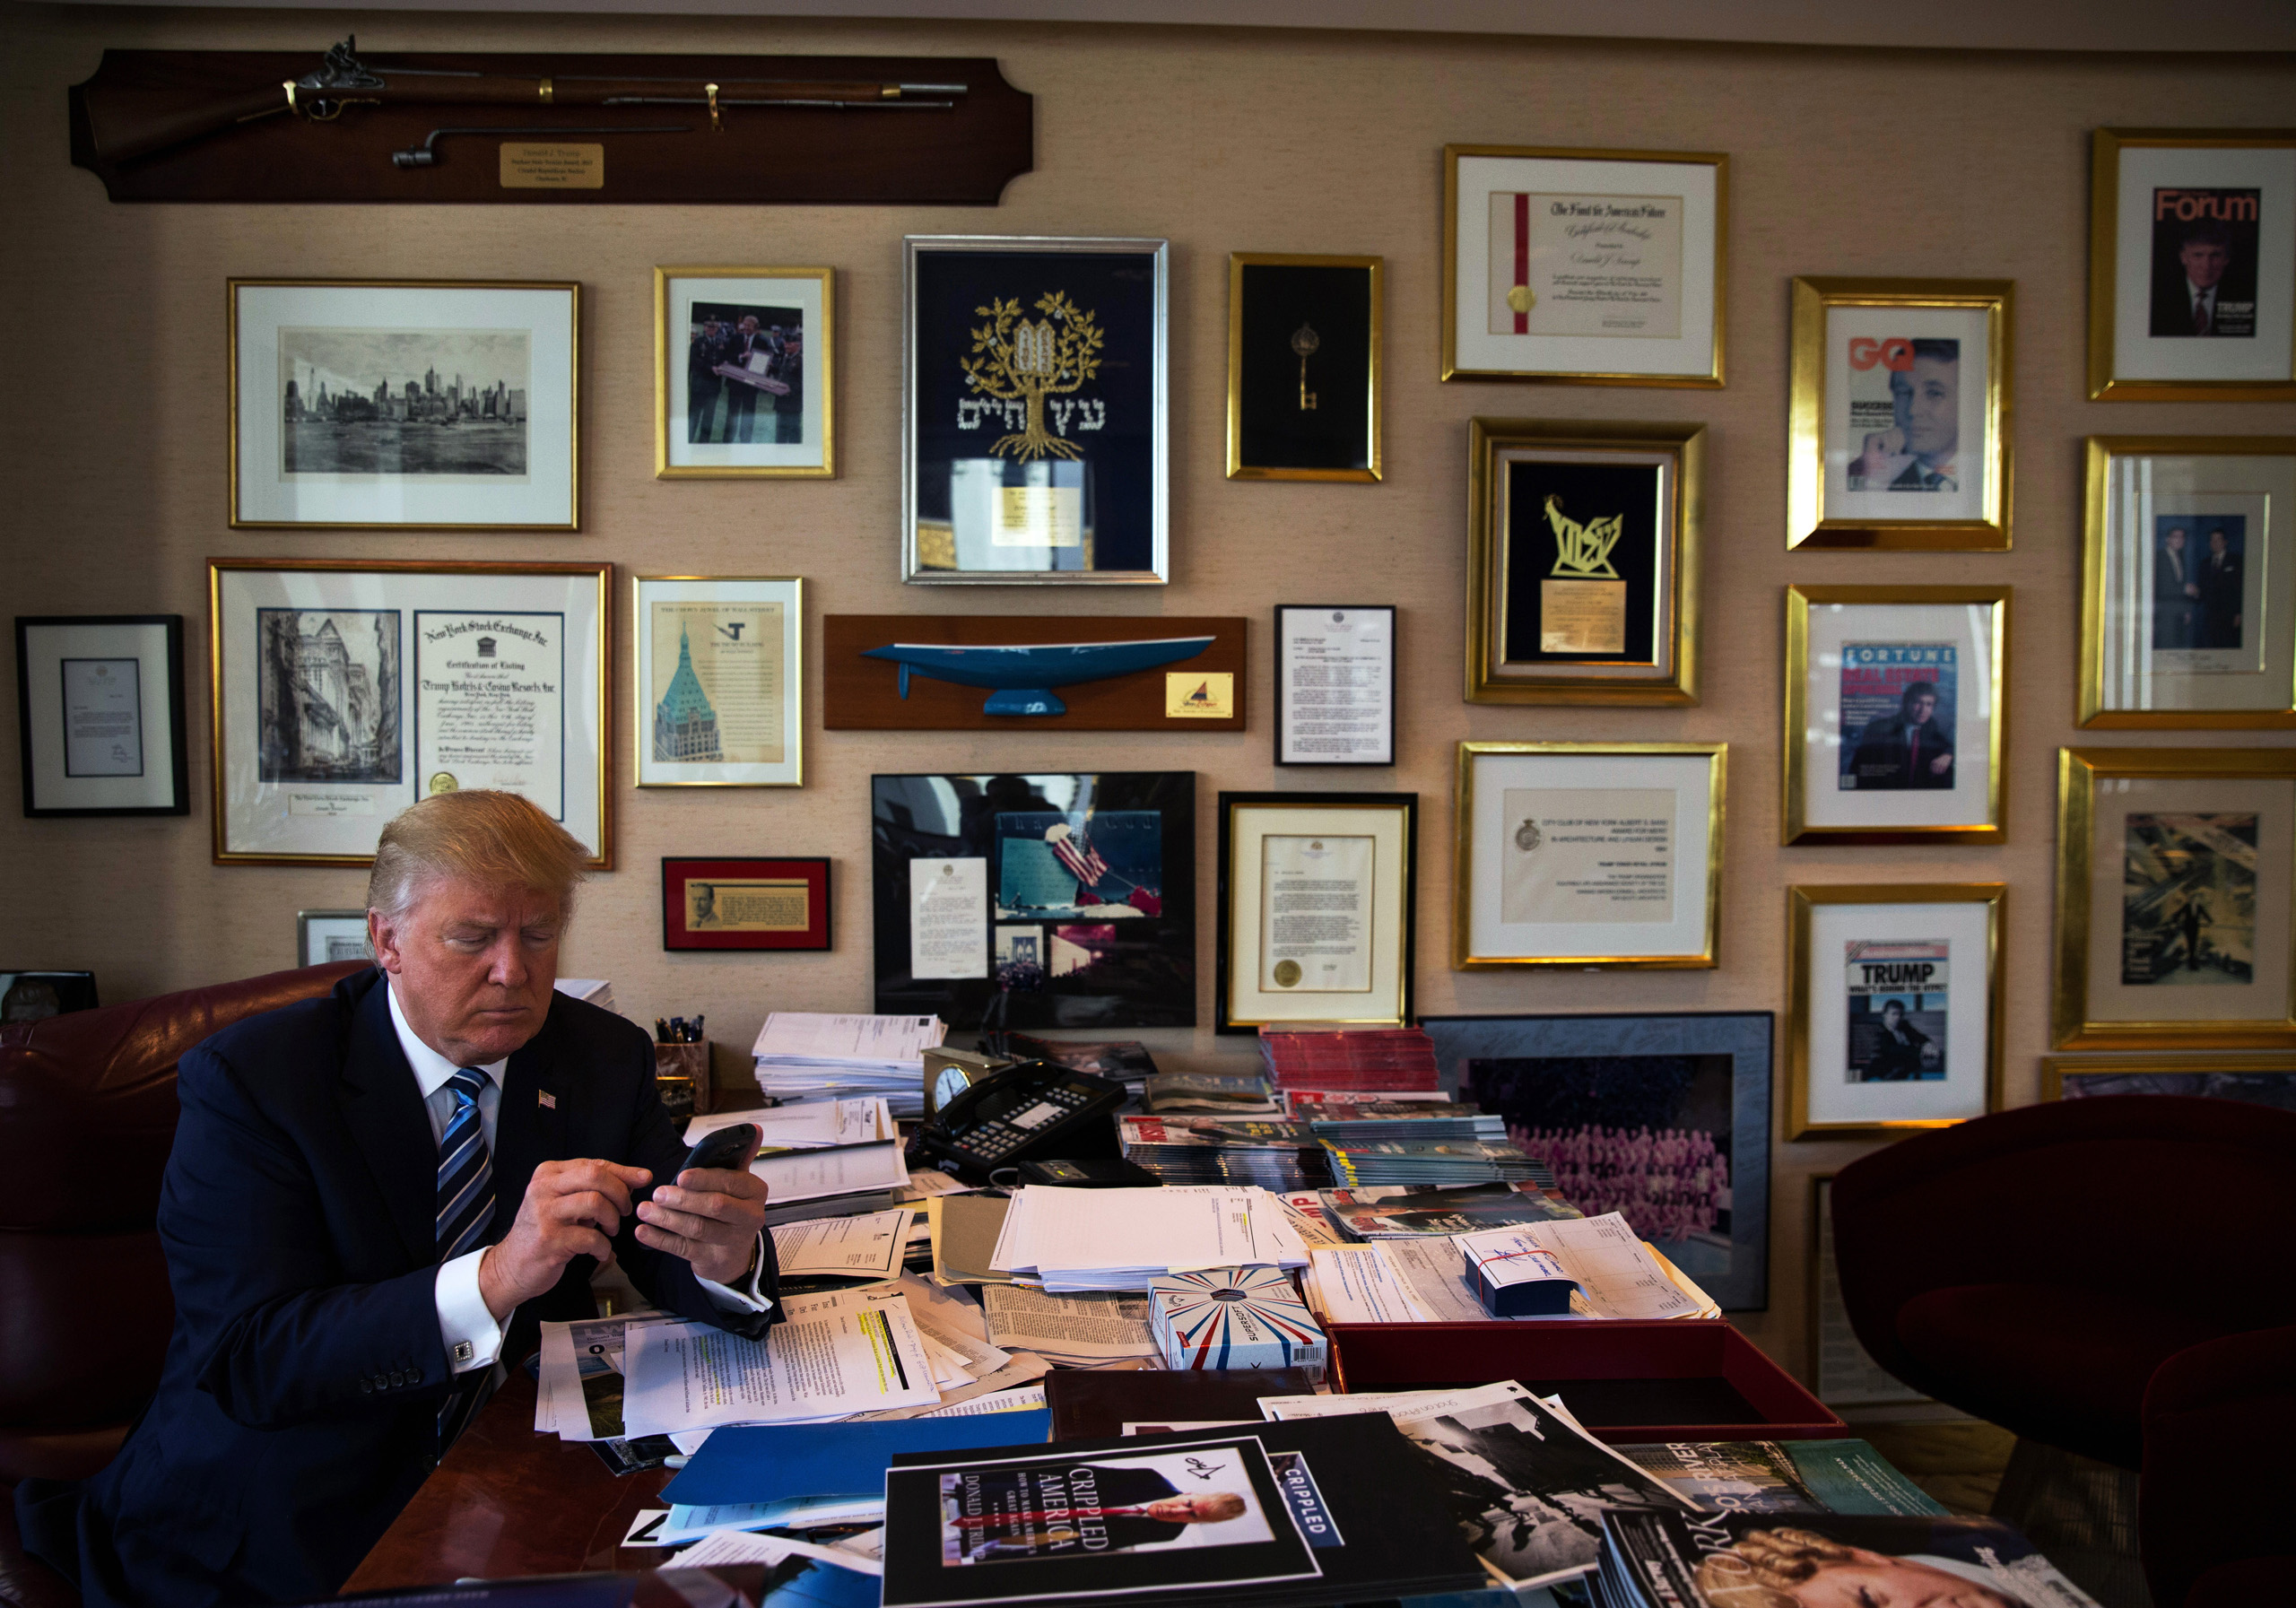 Donald Trump demonstrates how he Tweets using his Samsung phone in his office in the Trump Tower in New York City on Sept. 29, 2015.